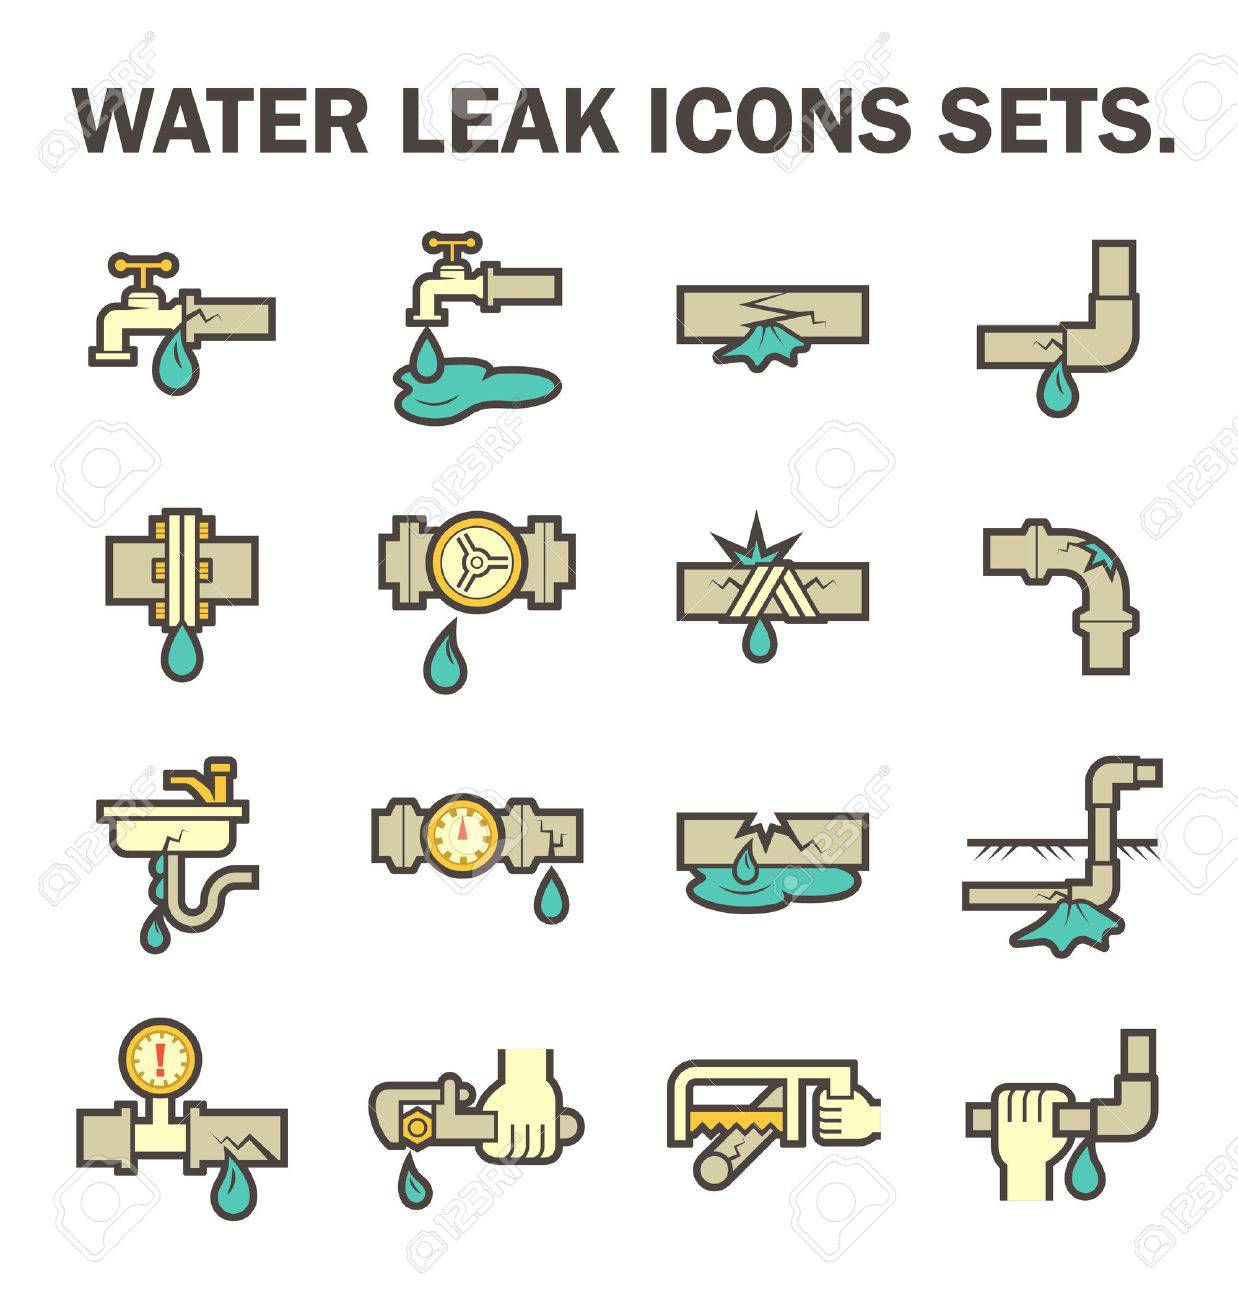 Burst pipe and water leak vector icon set design. - 60305016